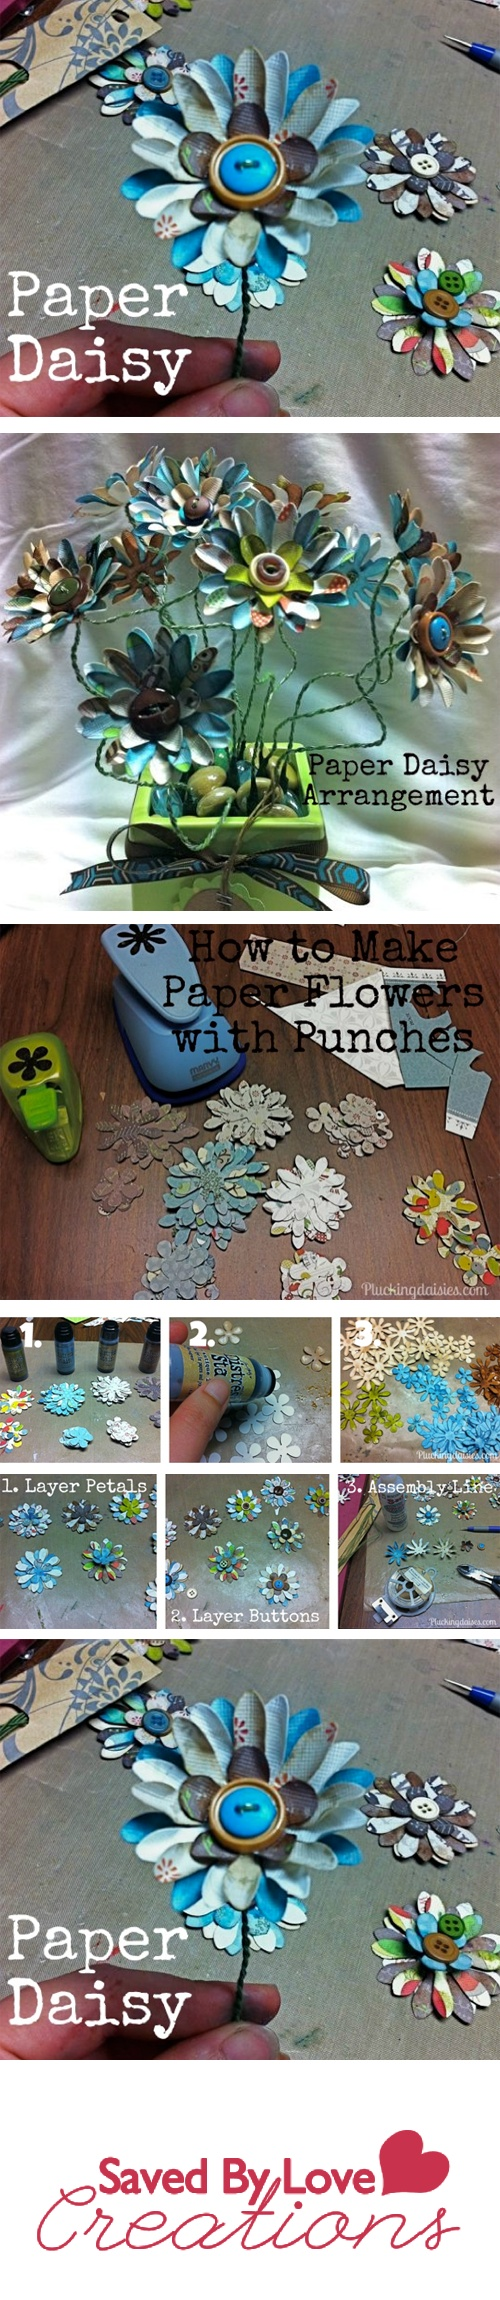 133 best Make these flowers images on Pinterest | Paper flowers ...